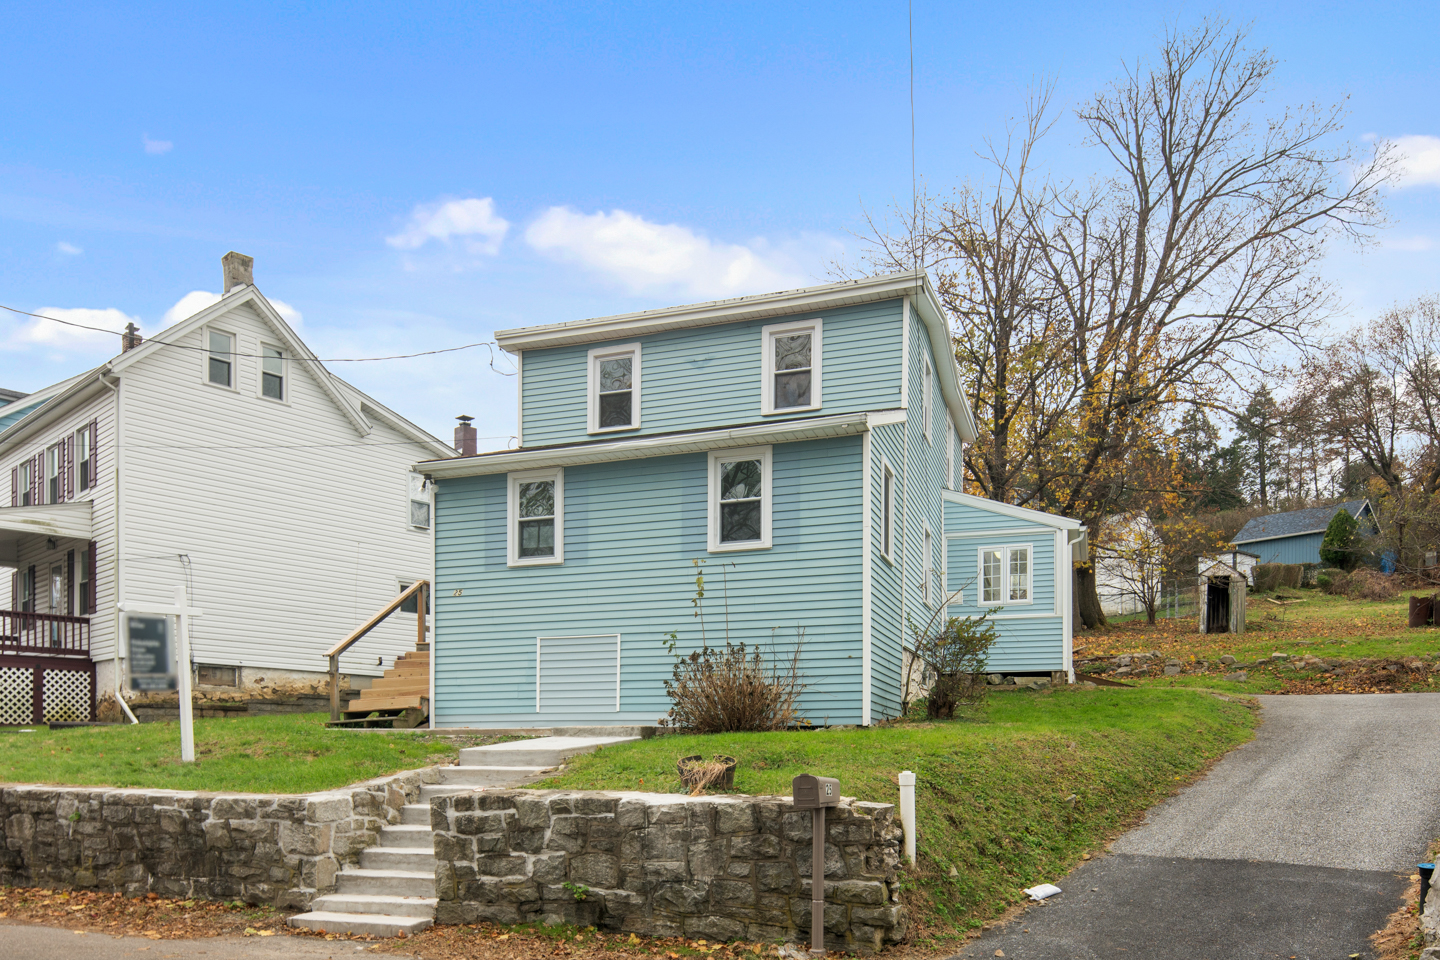 Sold | 25 New Road - Aston, PA, 19014